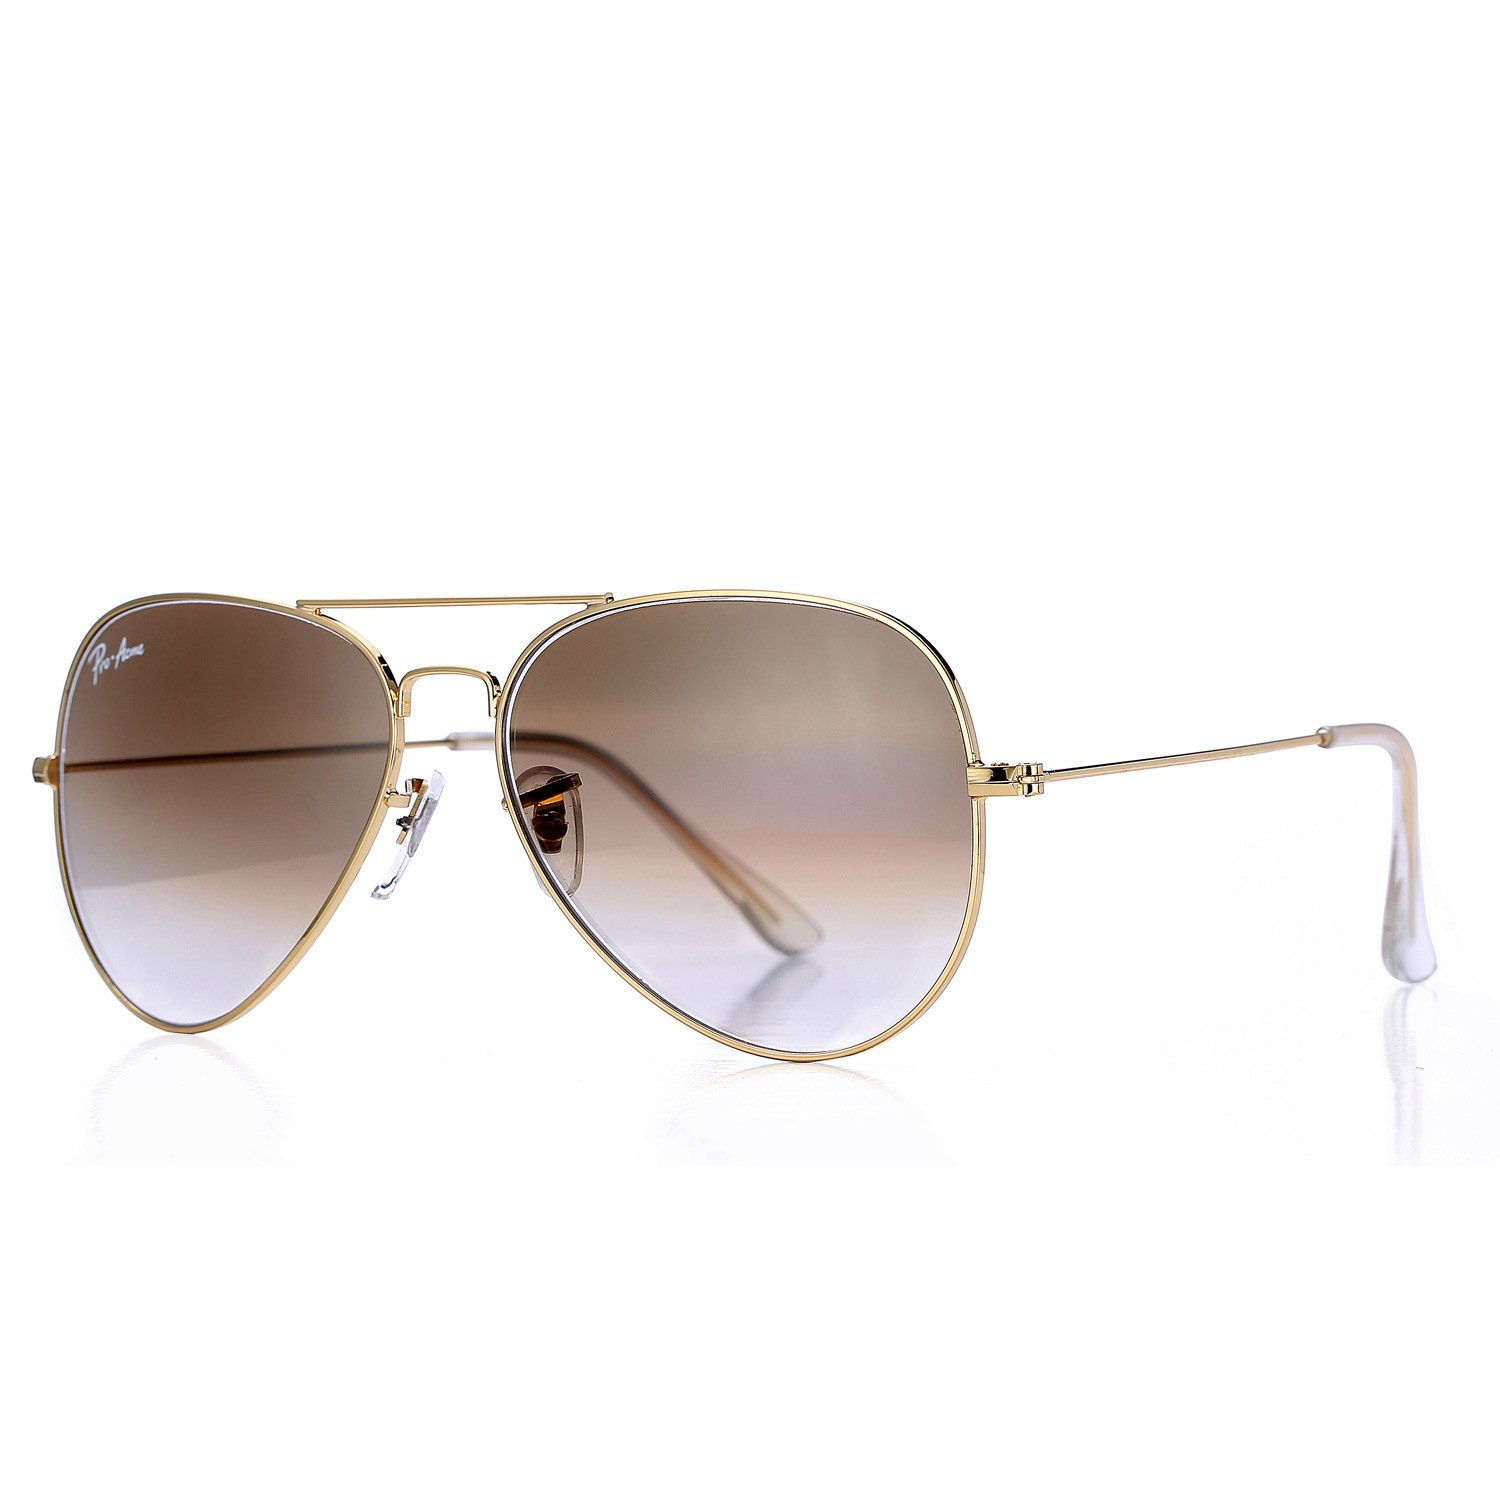 Pro Acme Aviator Crystal Lens Large Metal Sunglasses (Gold Frame/Crystal Brown Gradient Lens) by Pro Acme